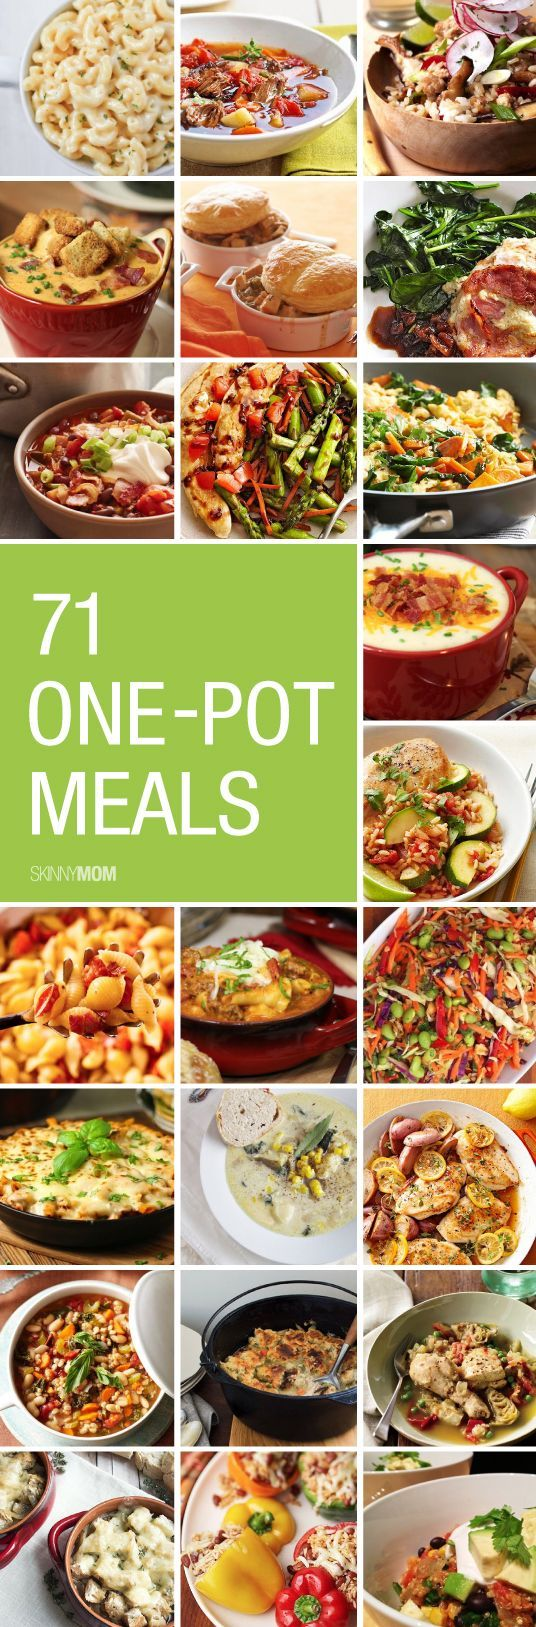 Looking for some quick and easy recipes with little clean up. Check out our list of 71 one-pot meals!: